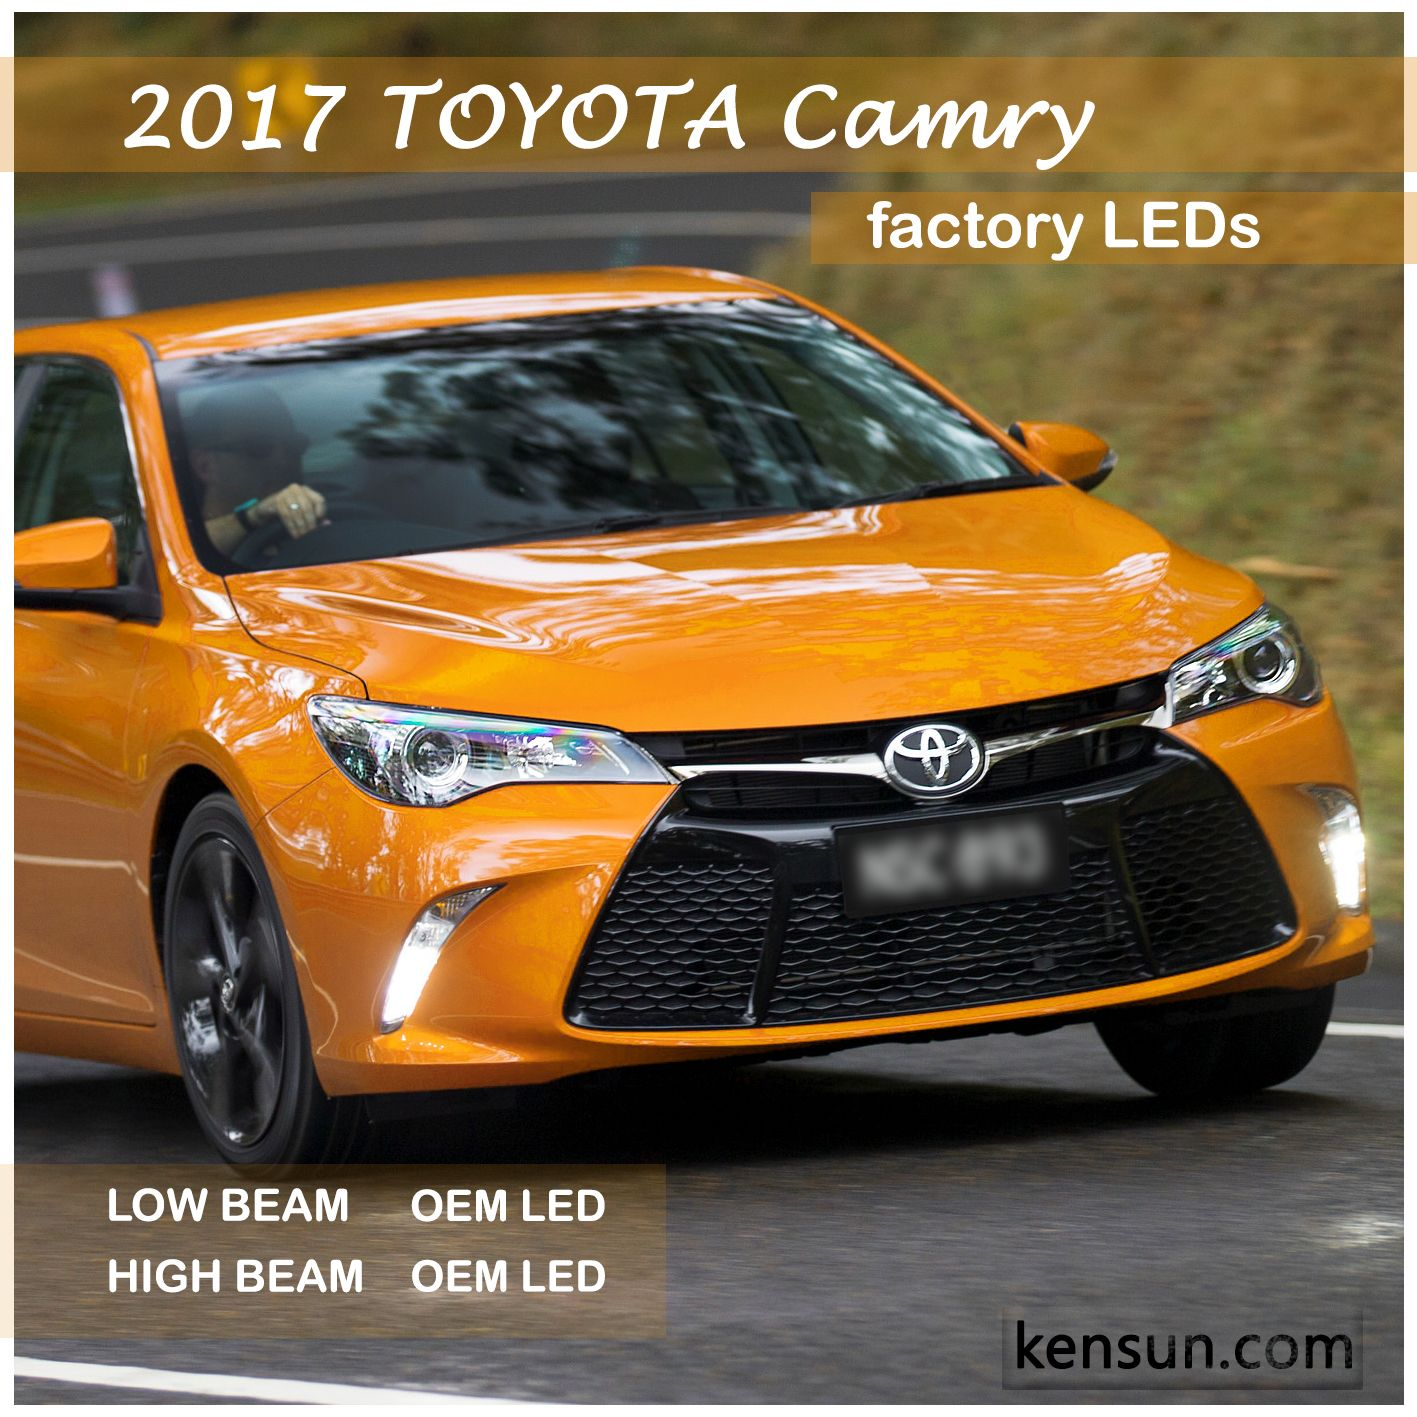 2017 Toyota Camry With Oem Leds Comes With Proprietary Bulbs For